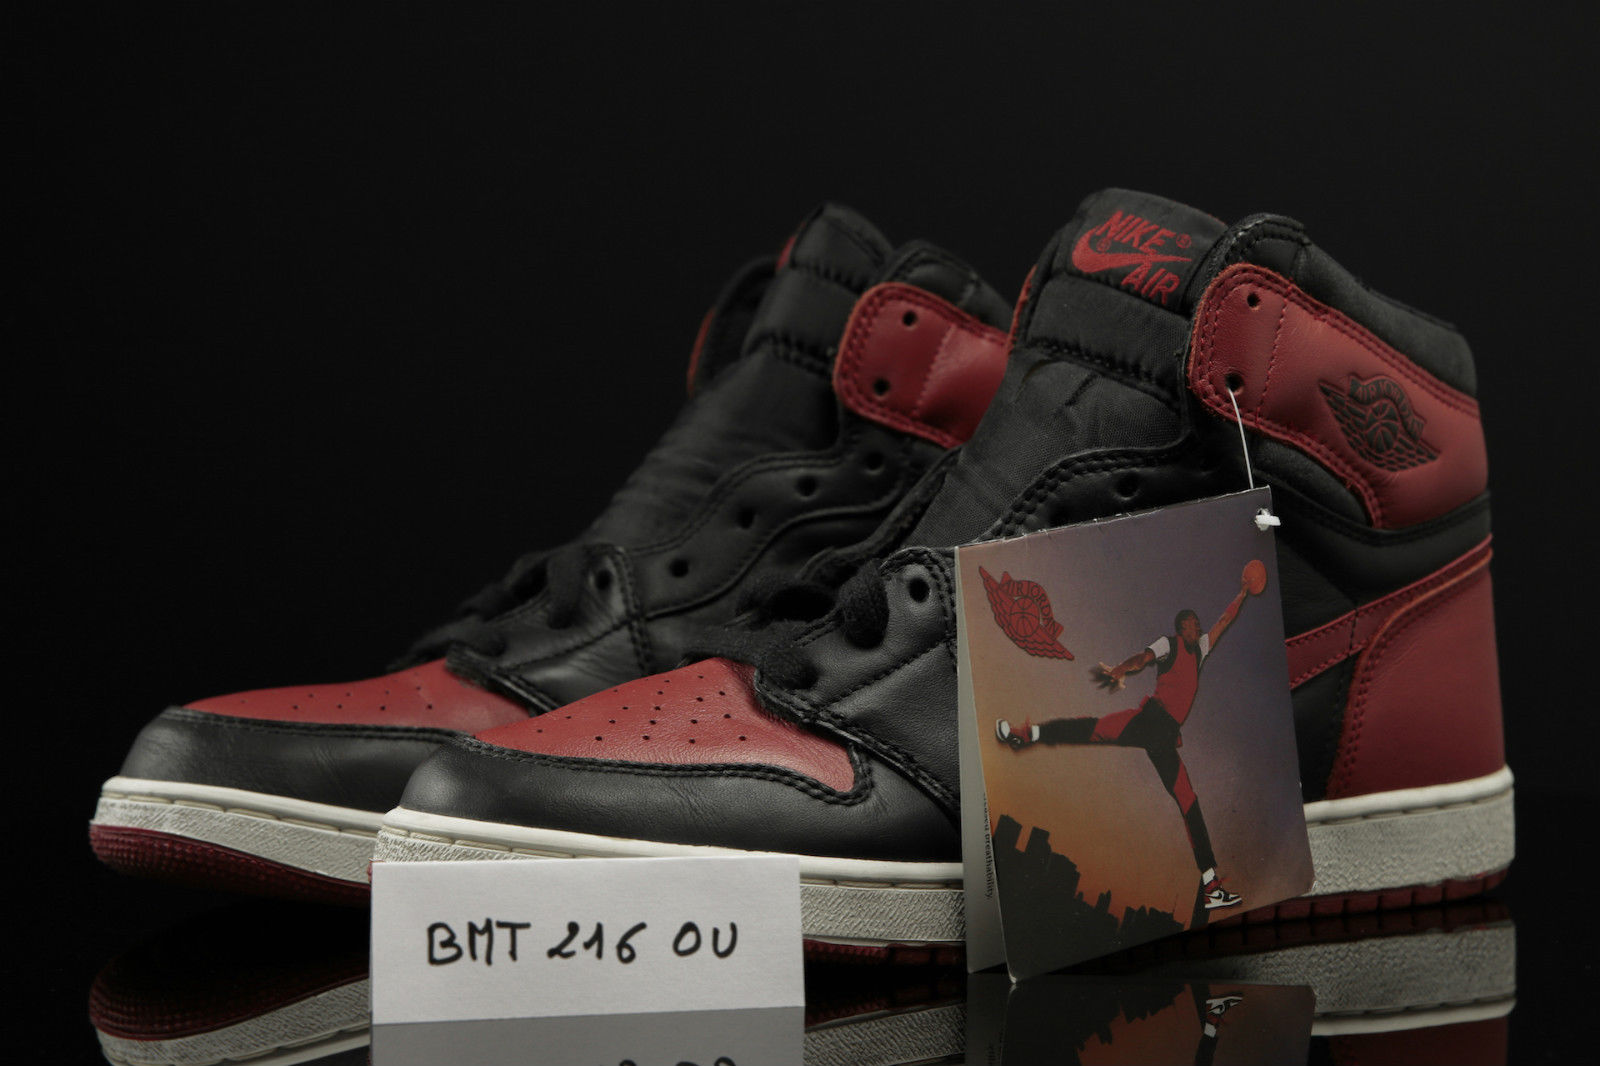 53169314bc8c78 The 23 Most Rare and Expensive Air Jordans on eBay Right Now